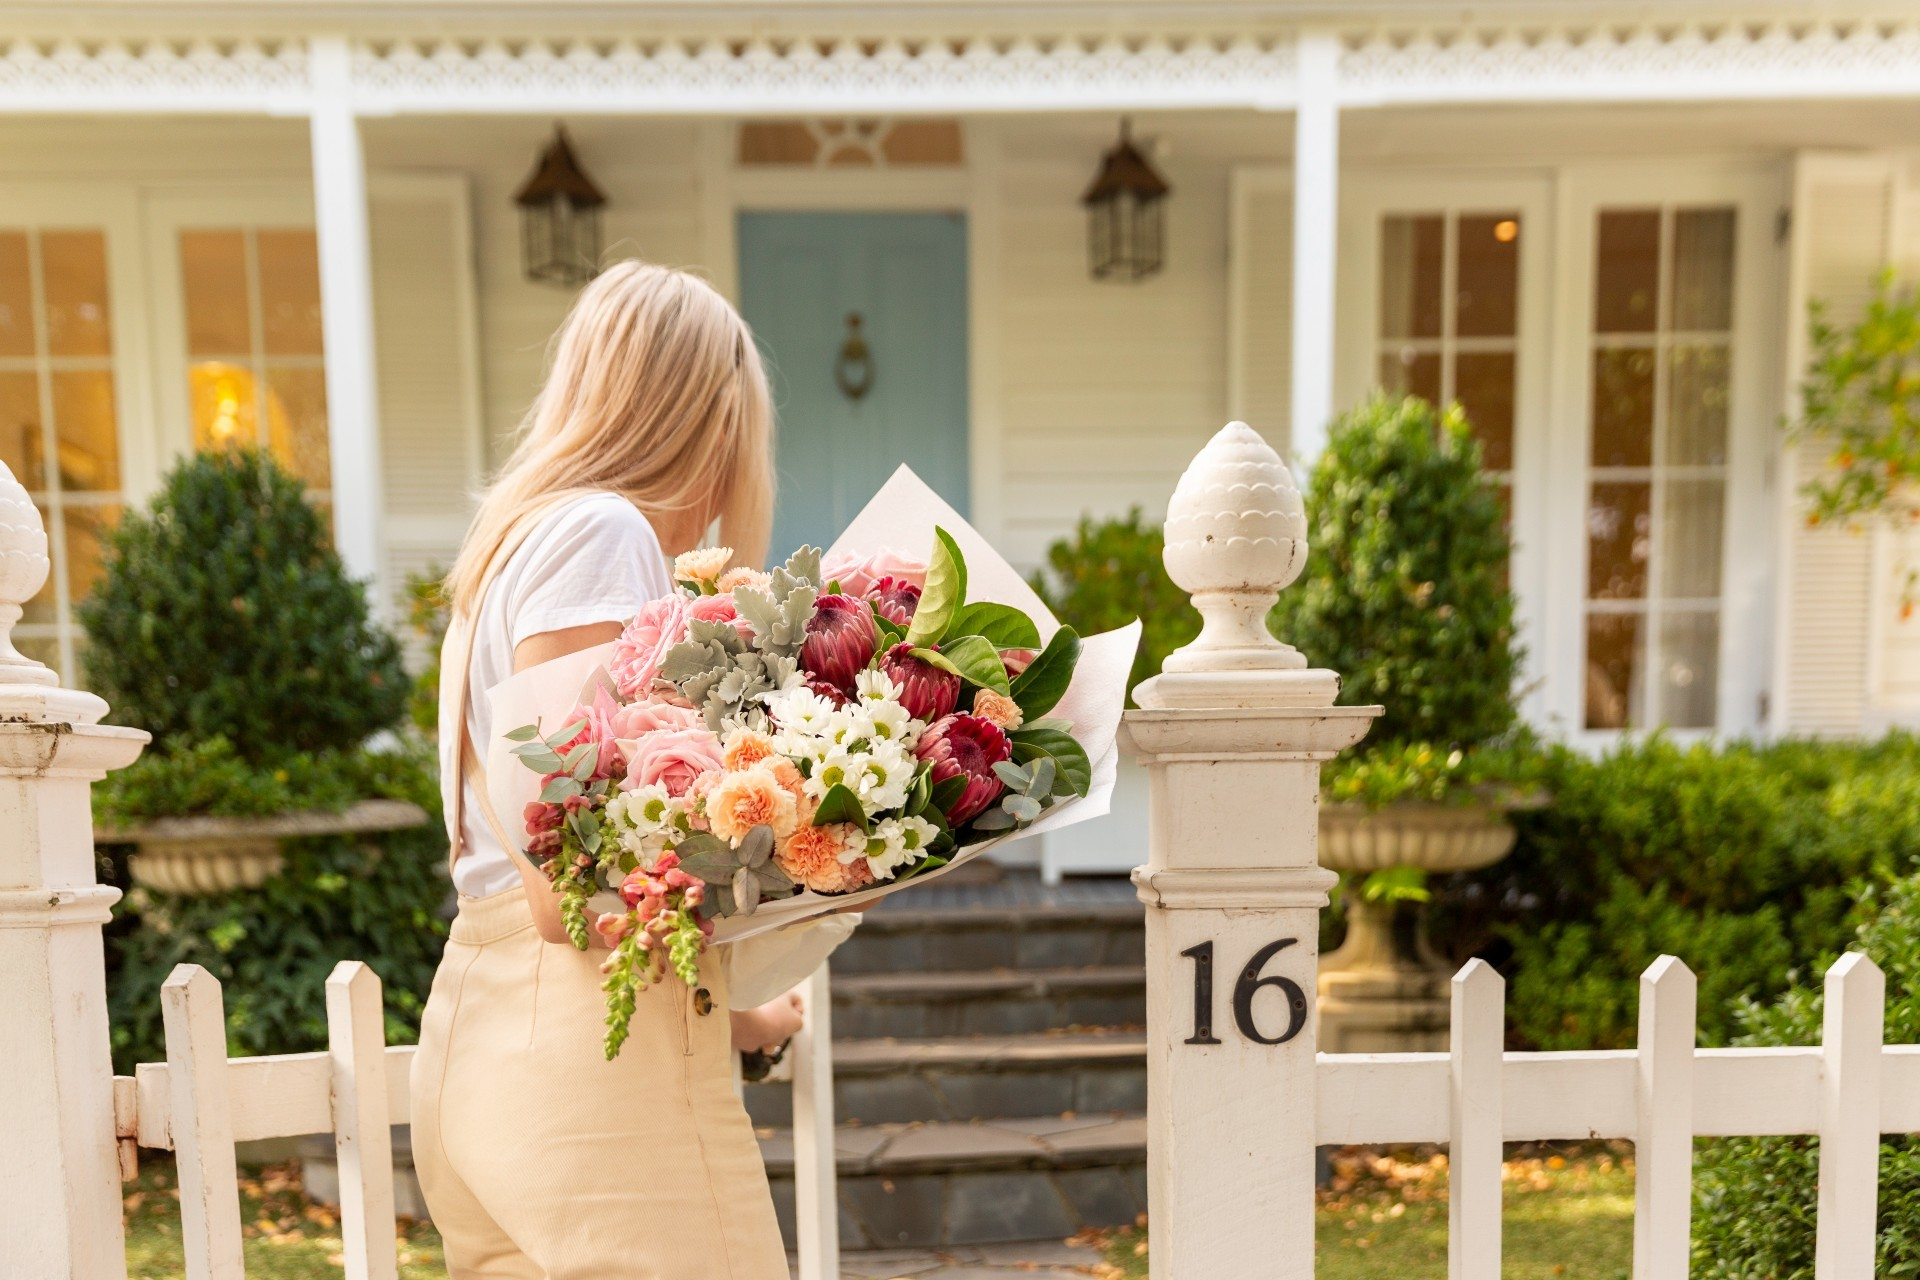 The best flower delivery services in Brisbane